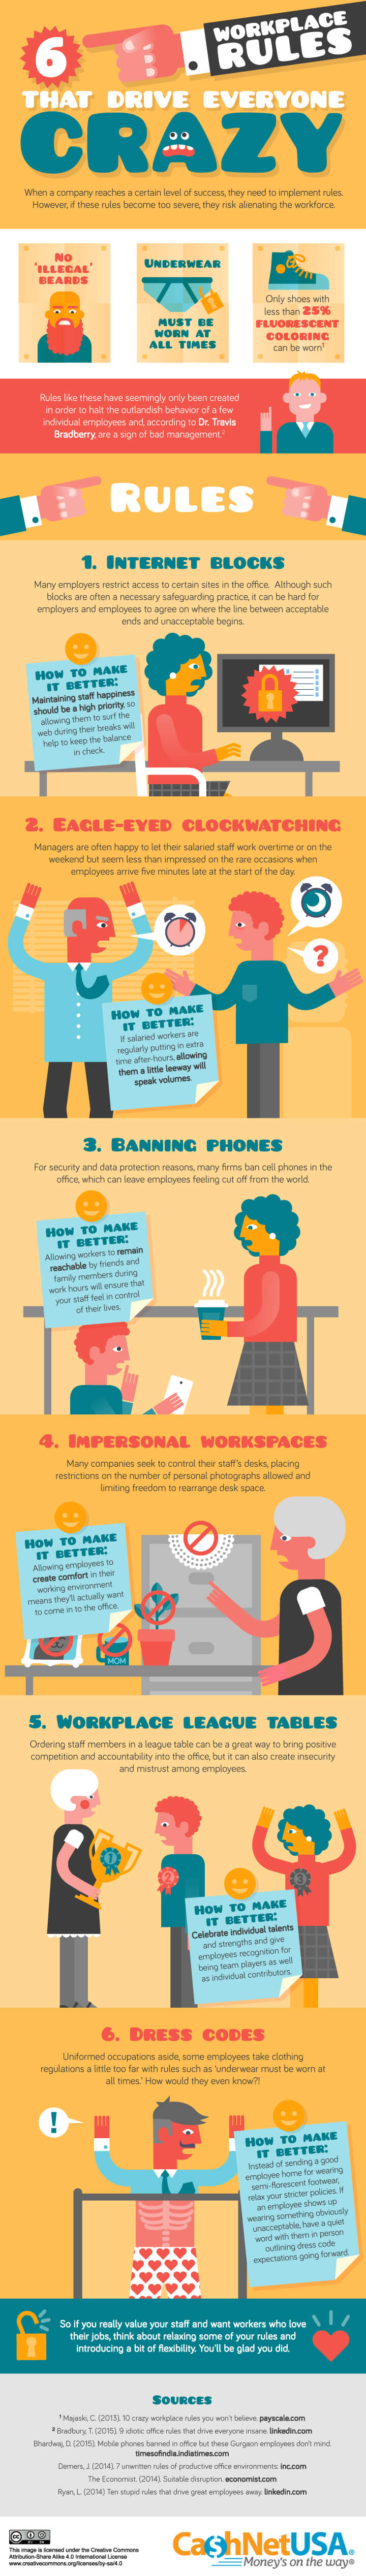 6 Workplace Rules And Why You Should Lose Them - Infographic